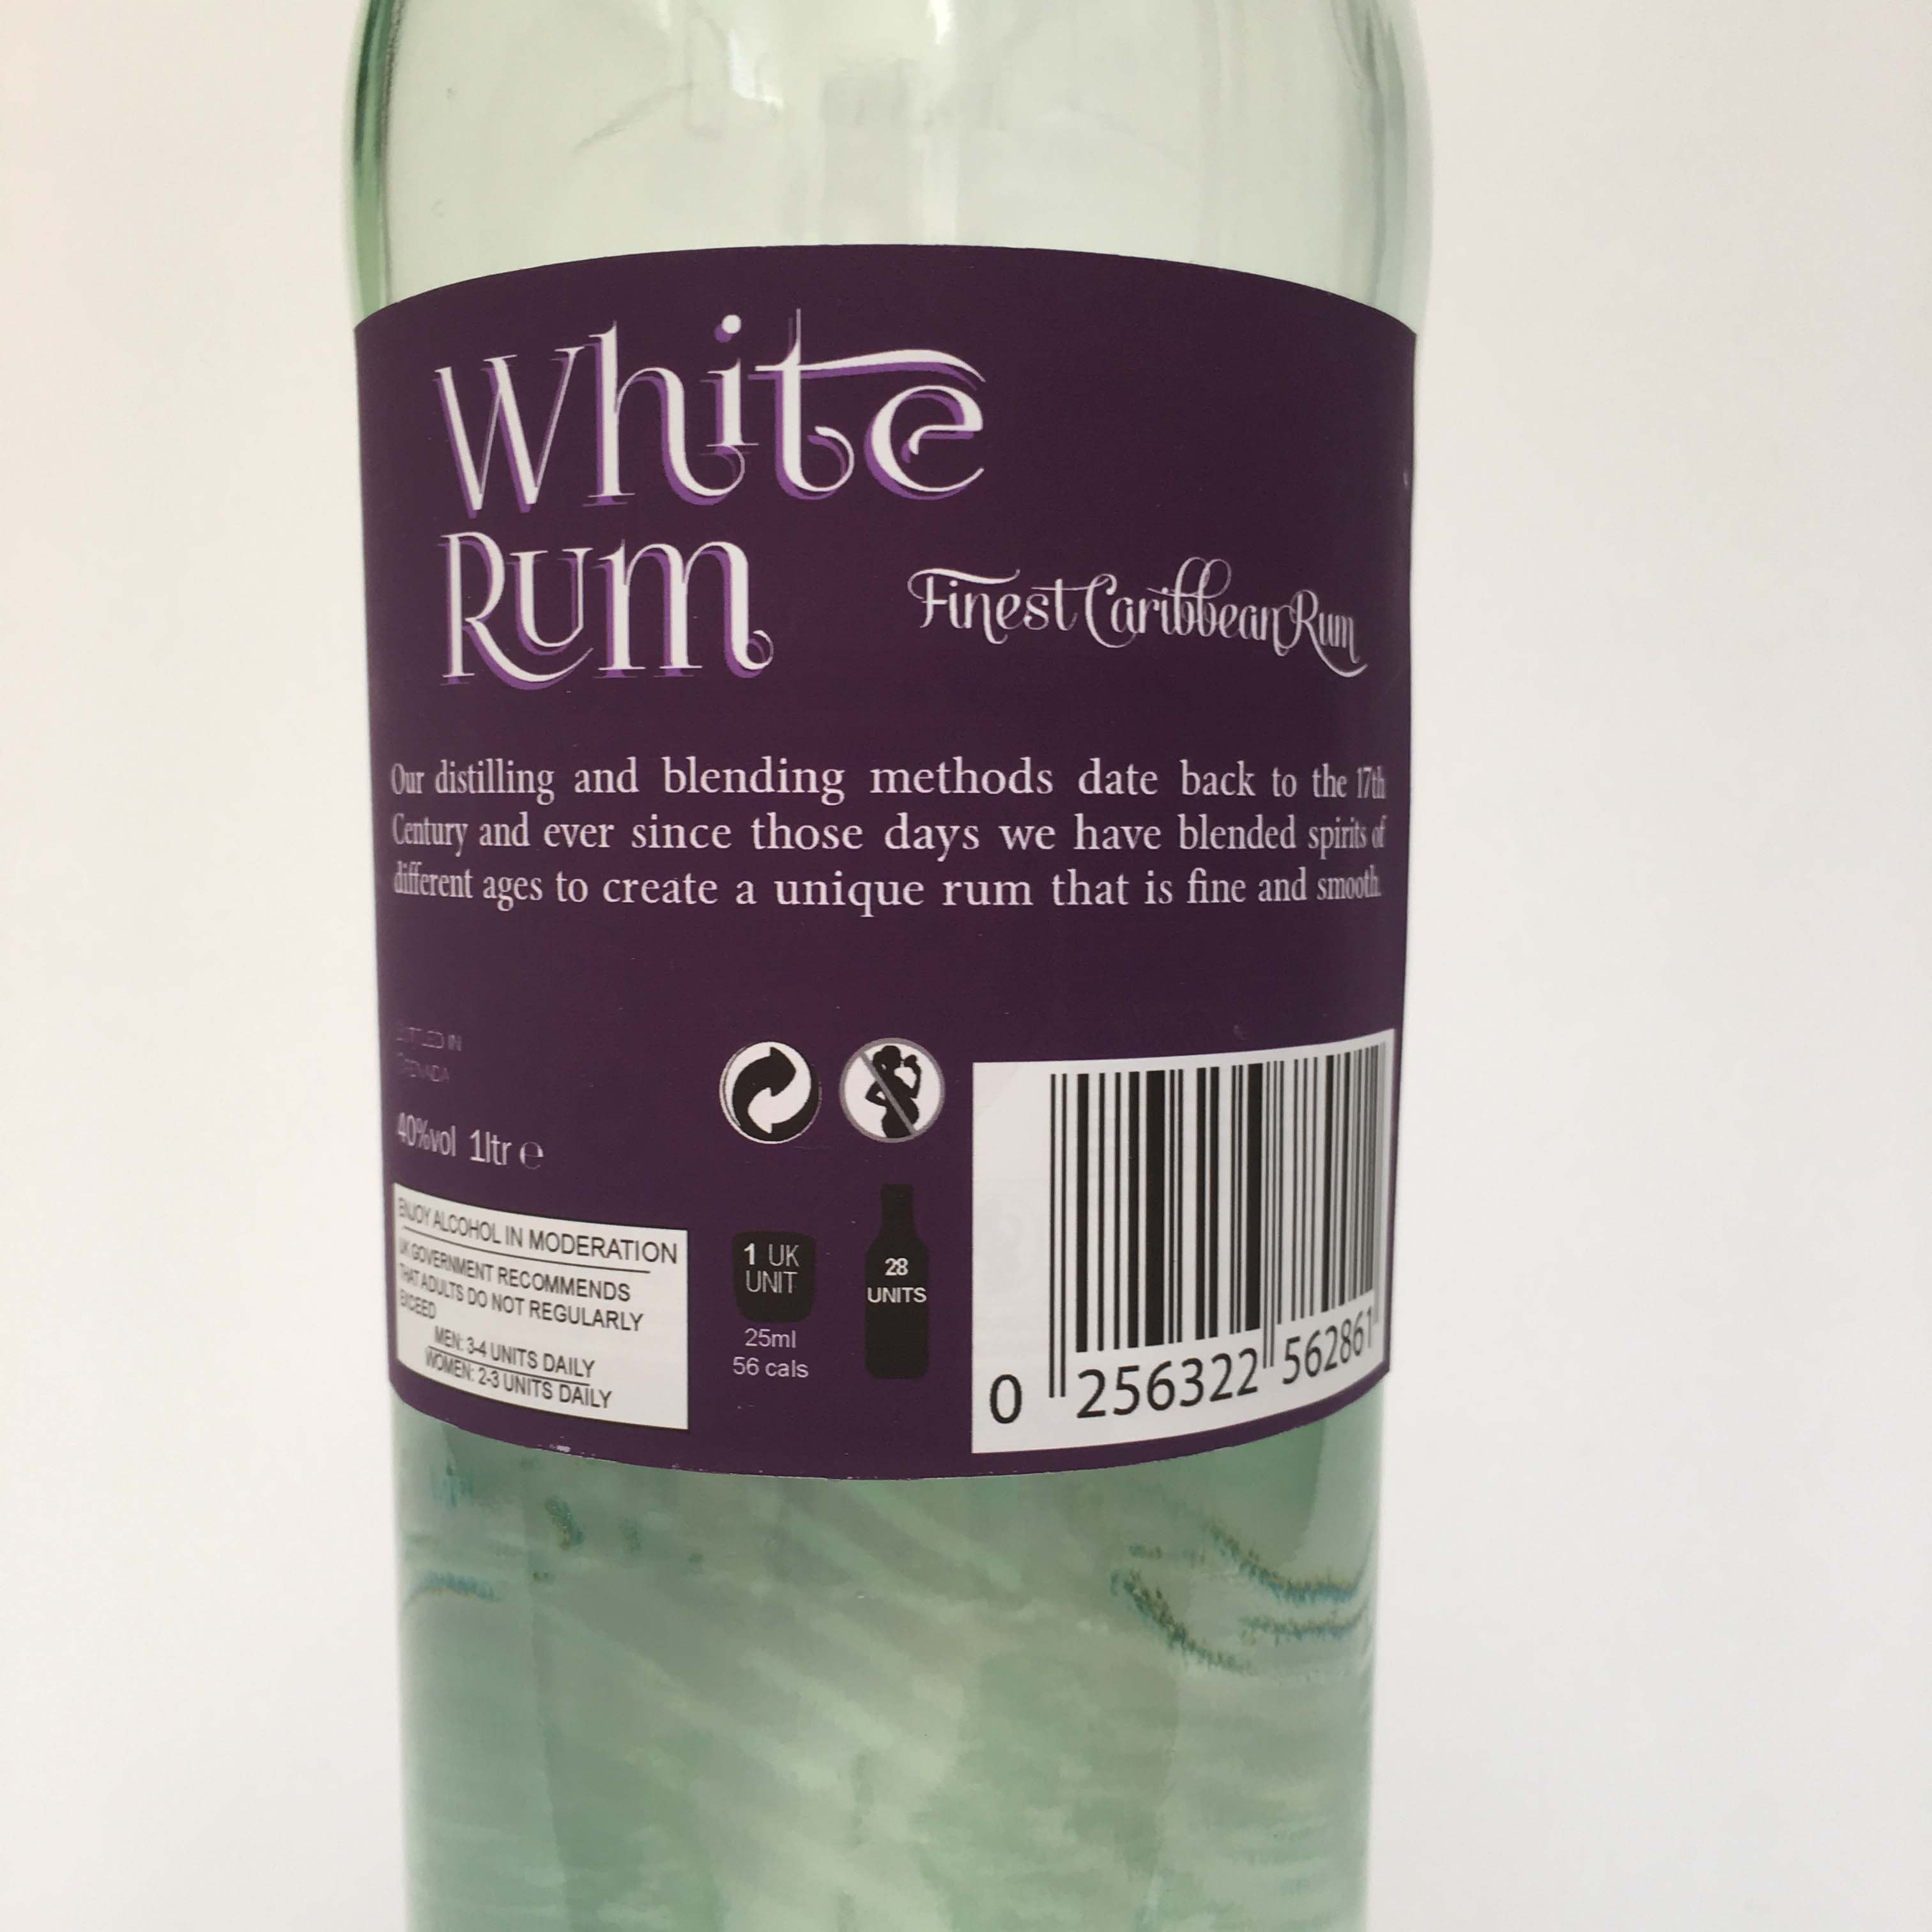 White Rum bottle Label | Graphic Prop Remedies